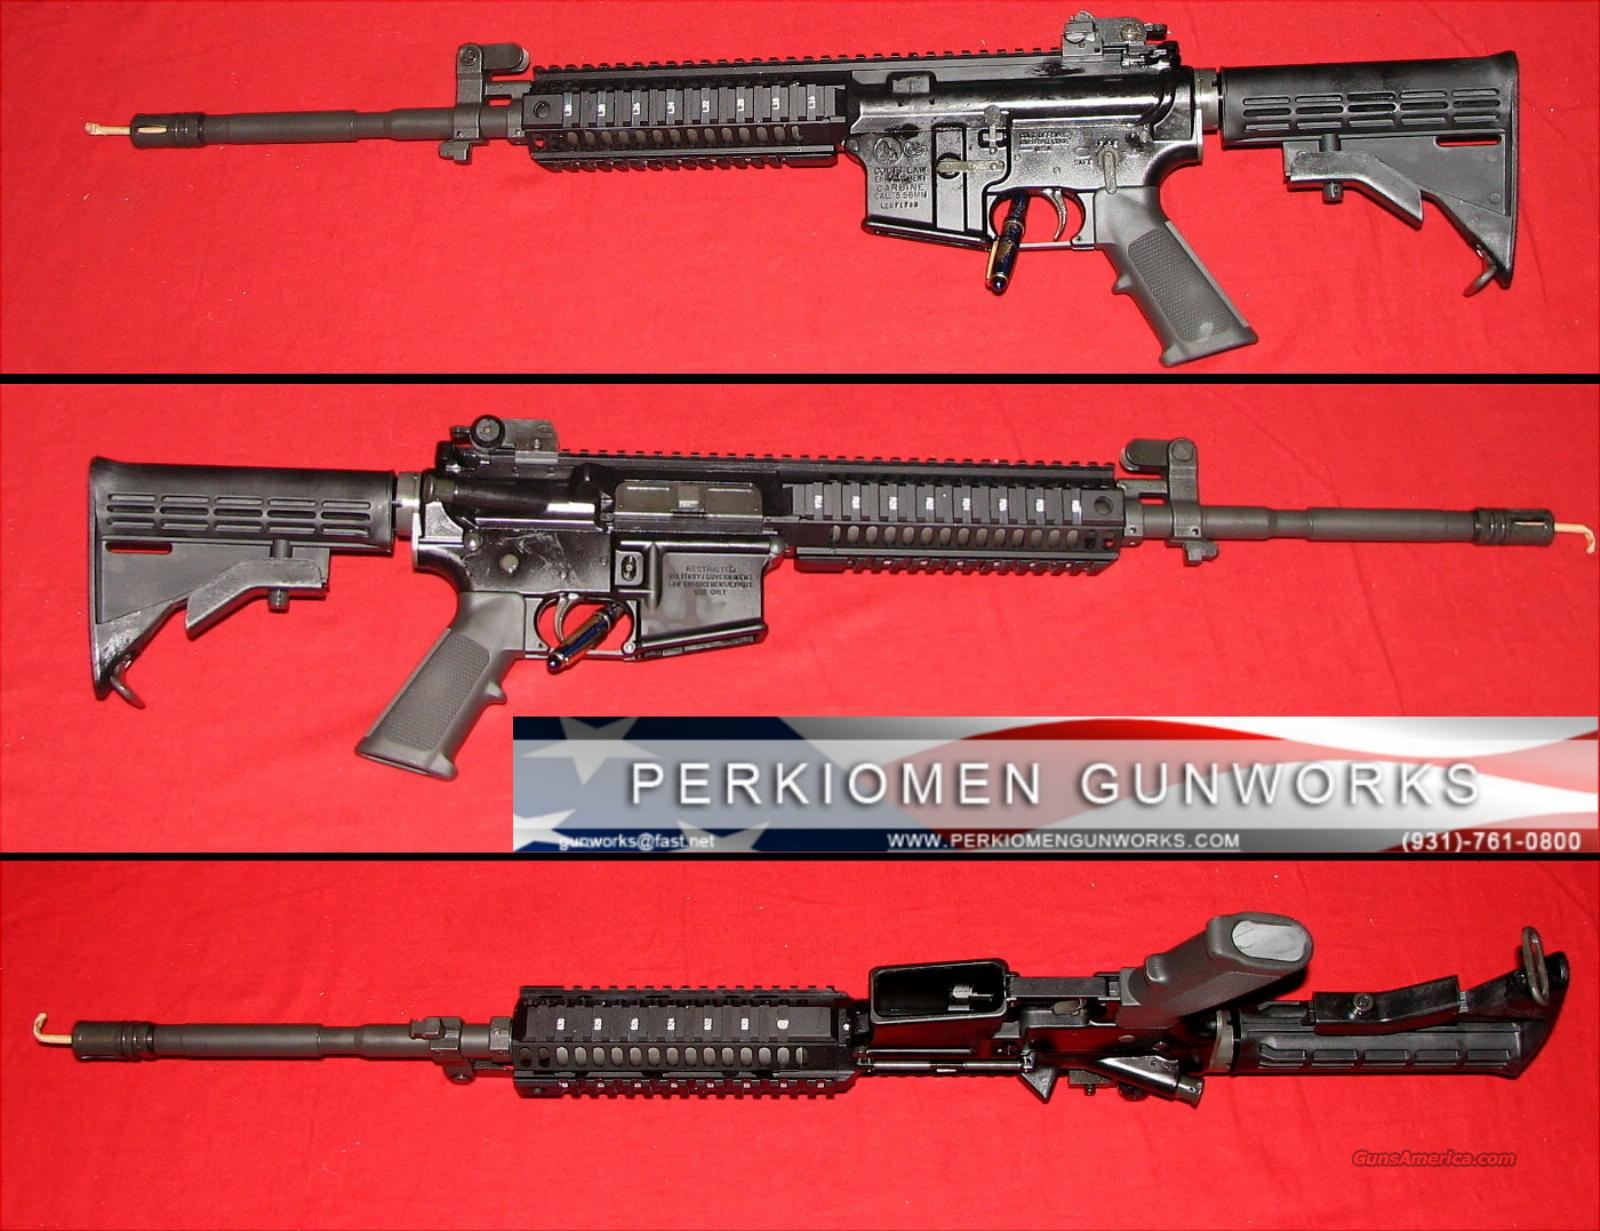 LE6940 M-4 5.56 Carbine, Law Enforcement - NIB  Guns > Rifles > Colt Military/Tactical Rifles